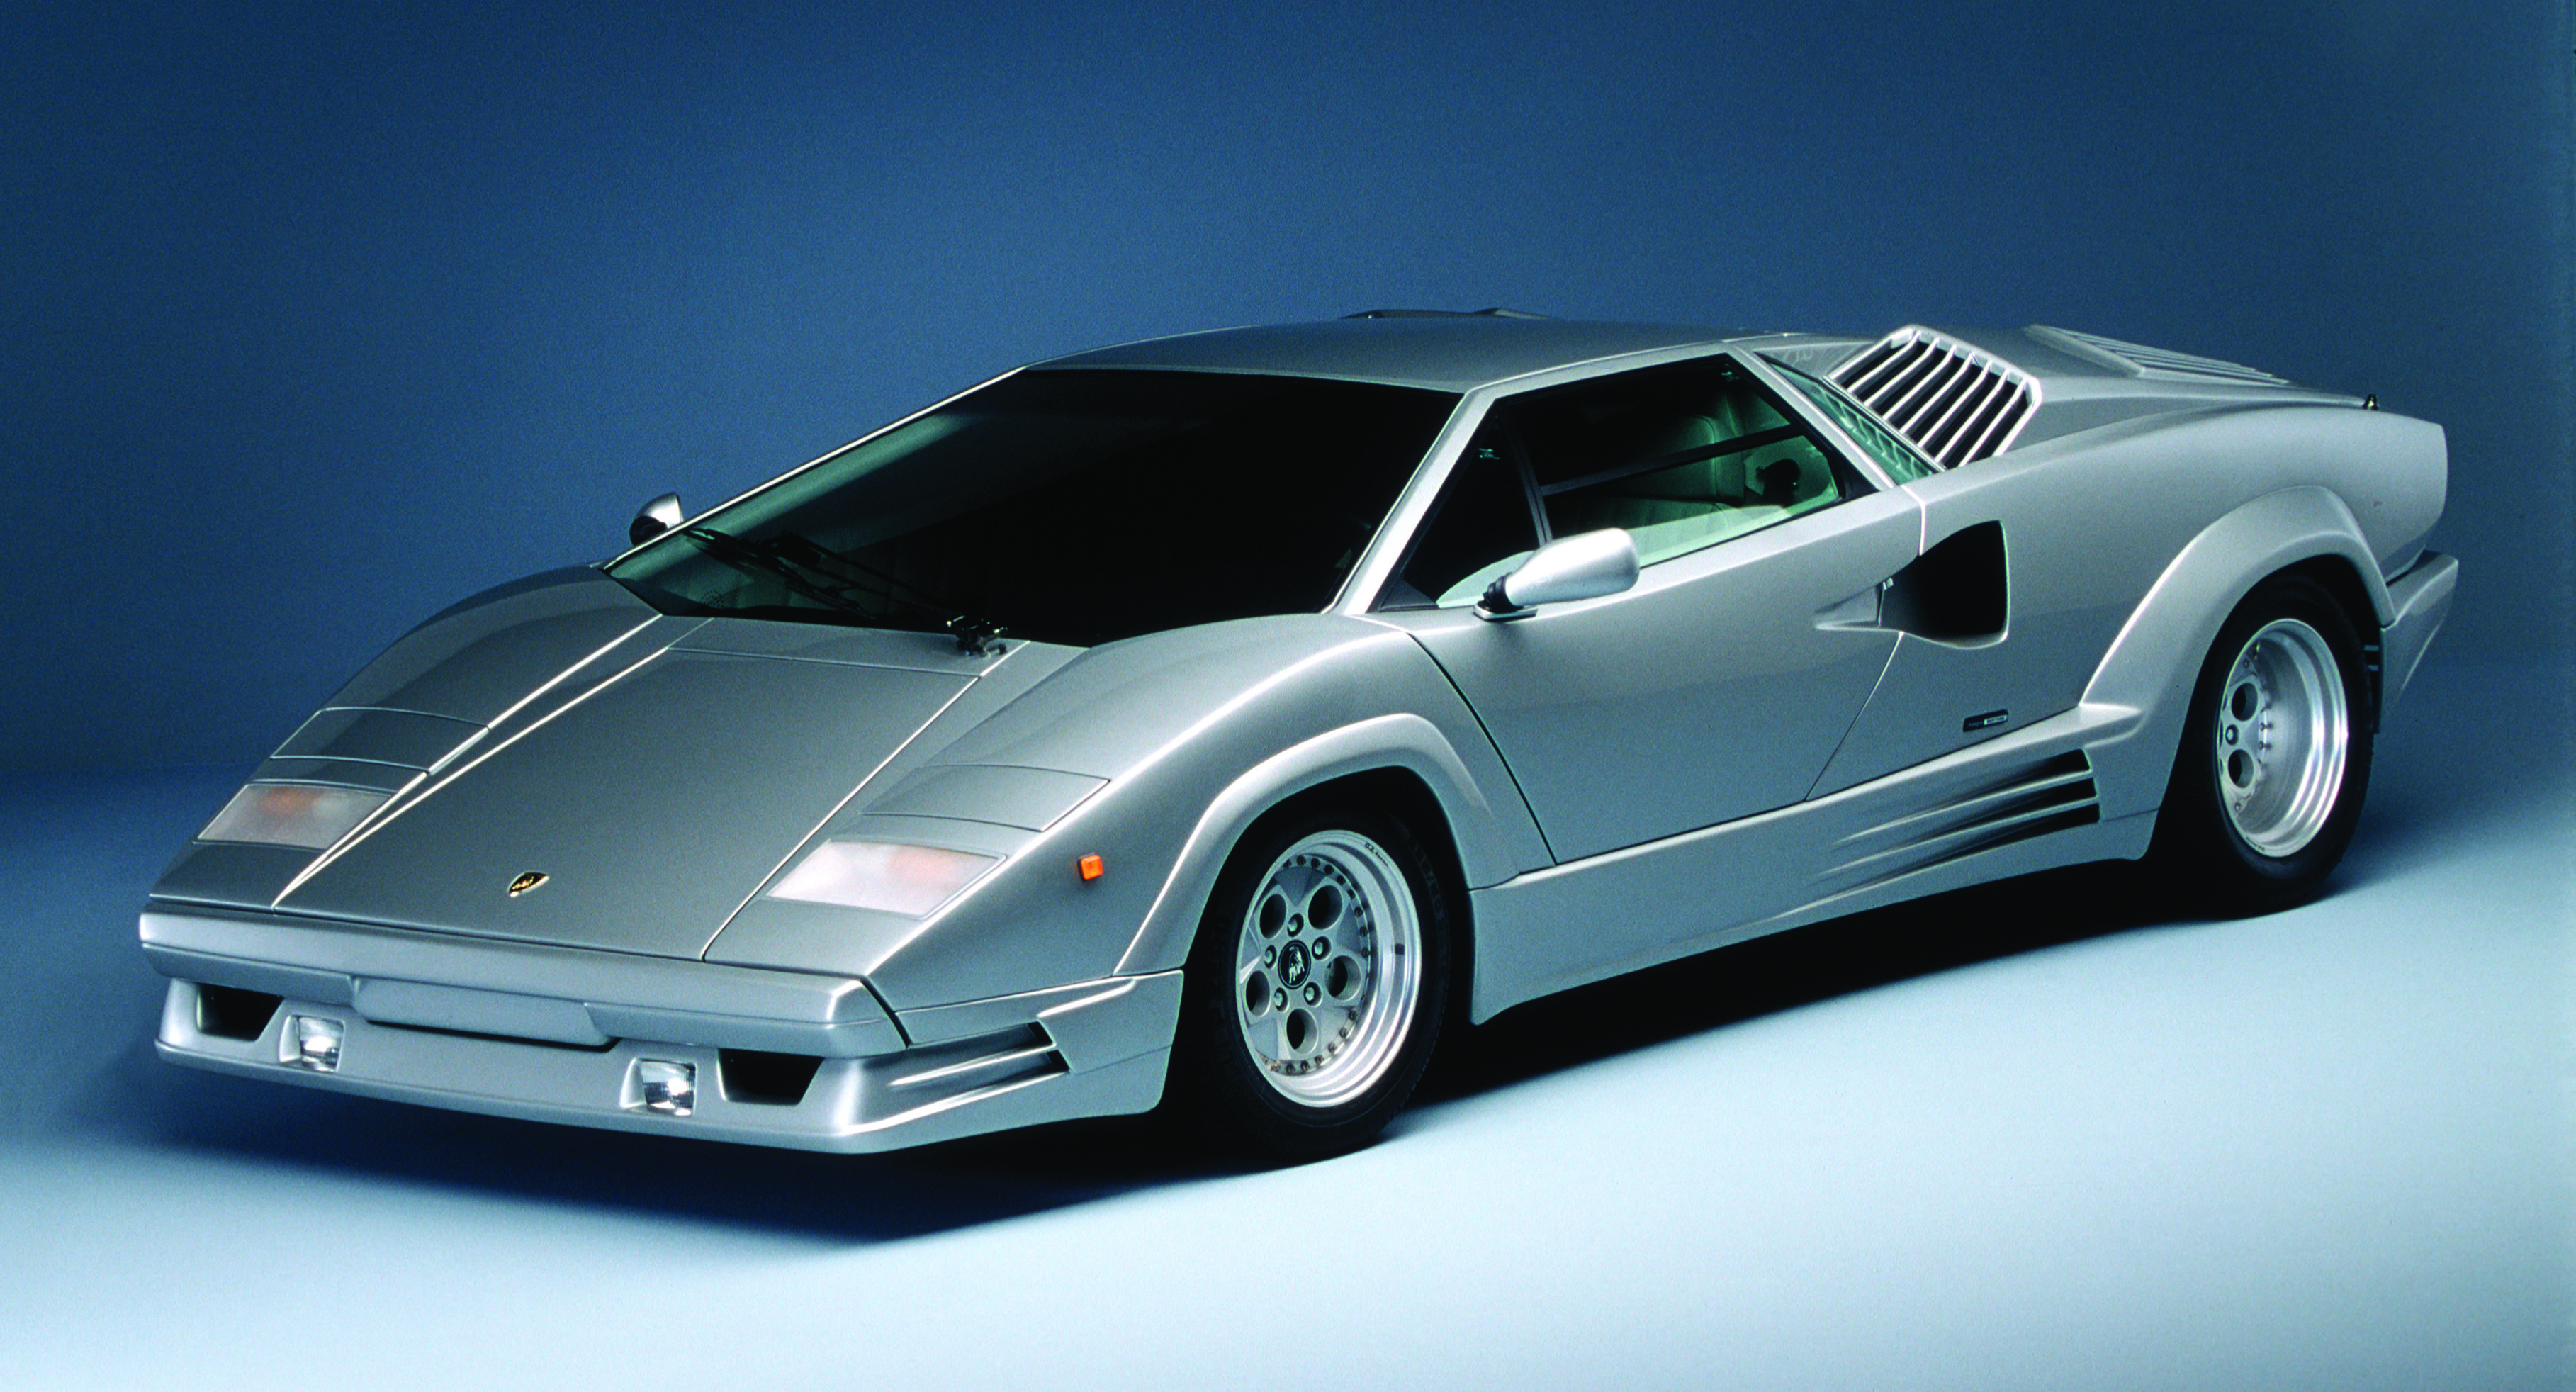 Lamborghini Countach 25th Annv 1988 Cartype